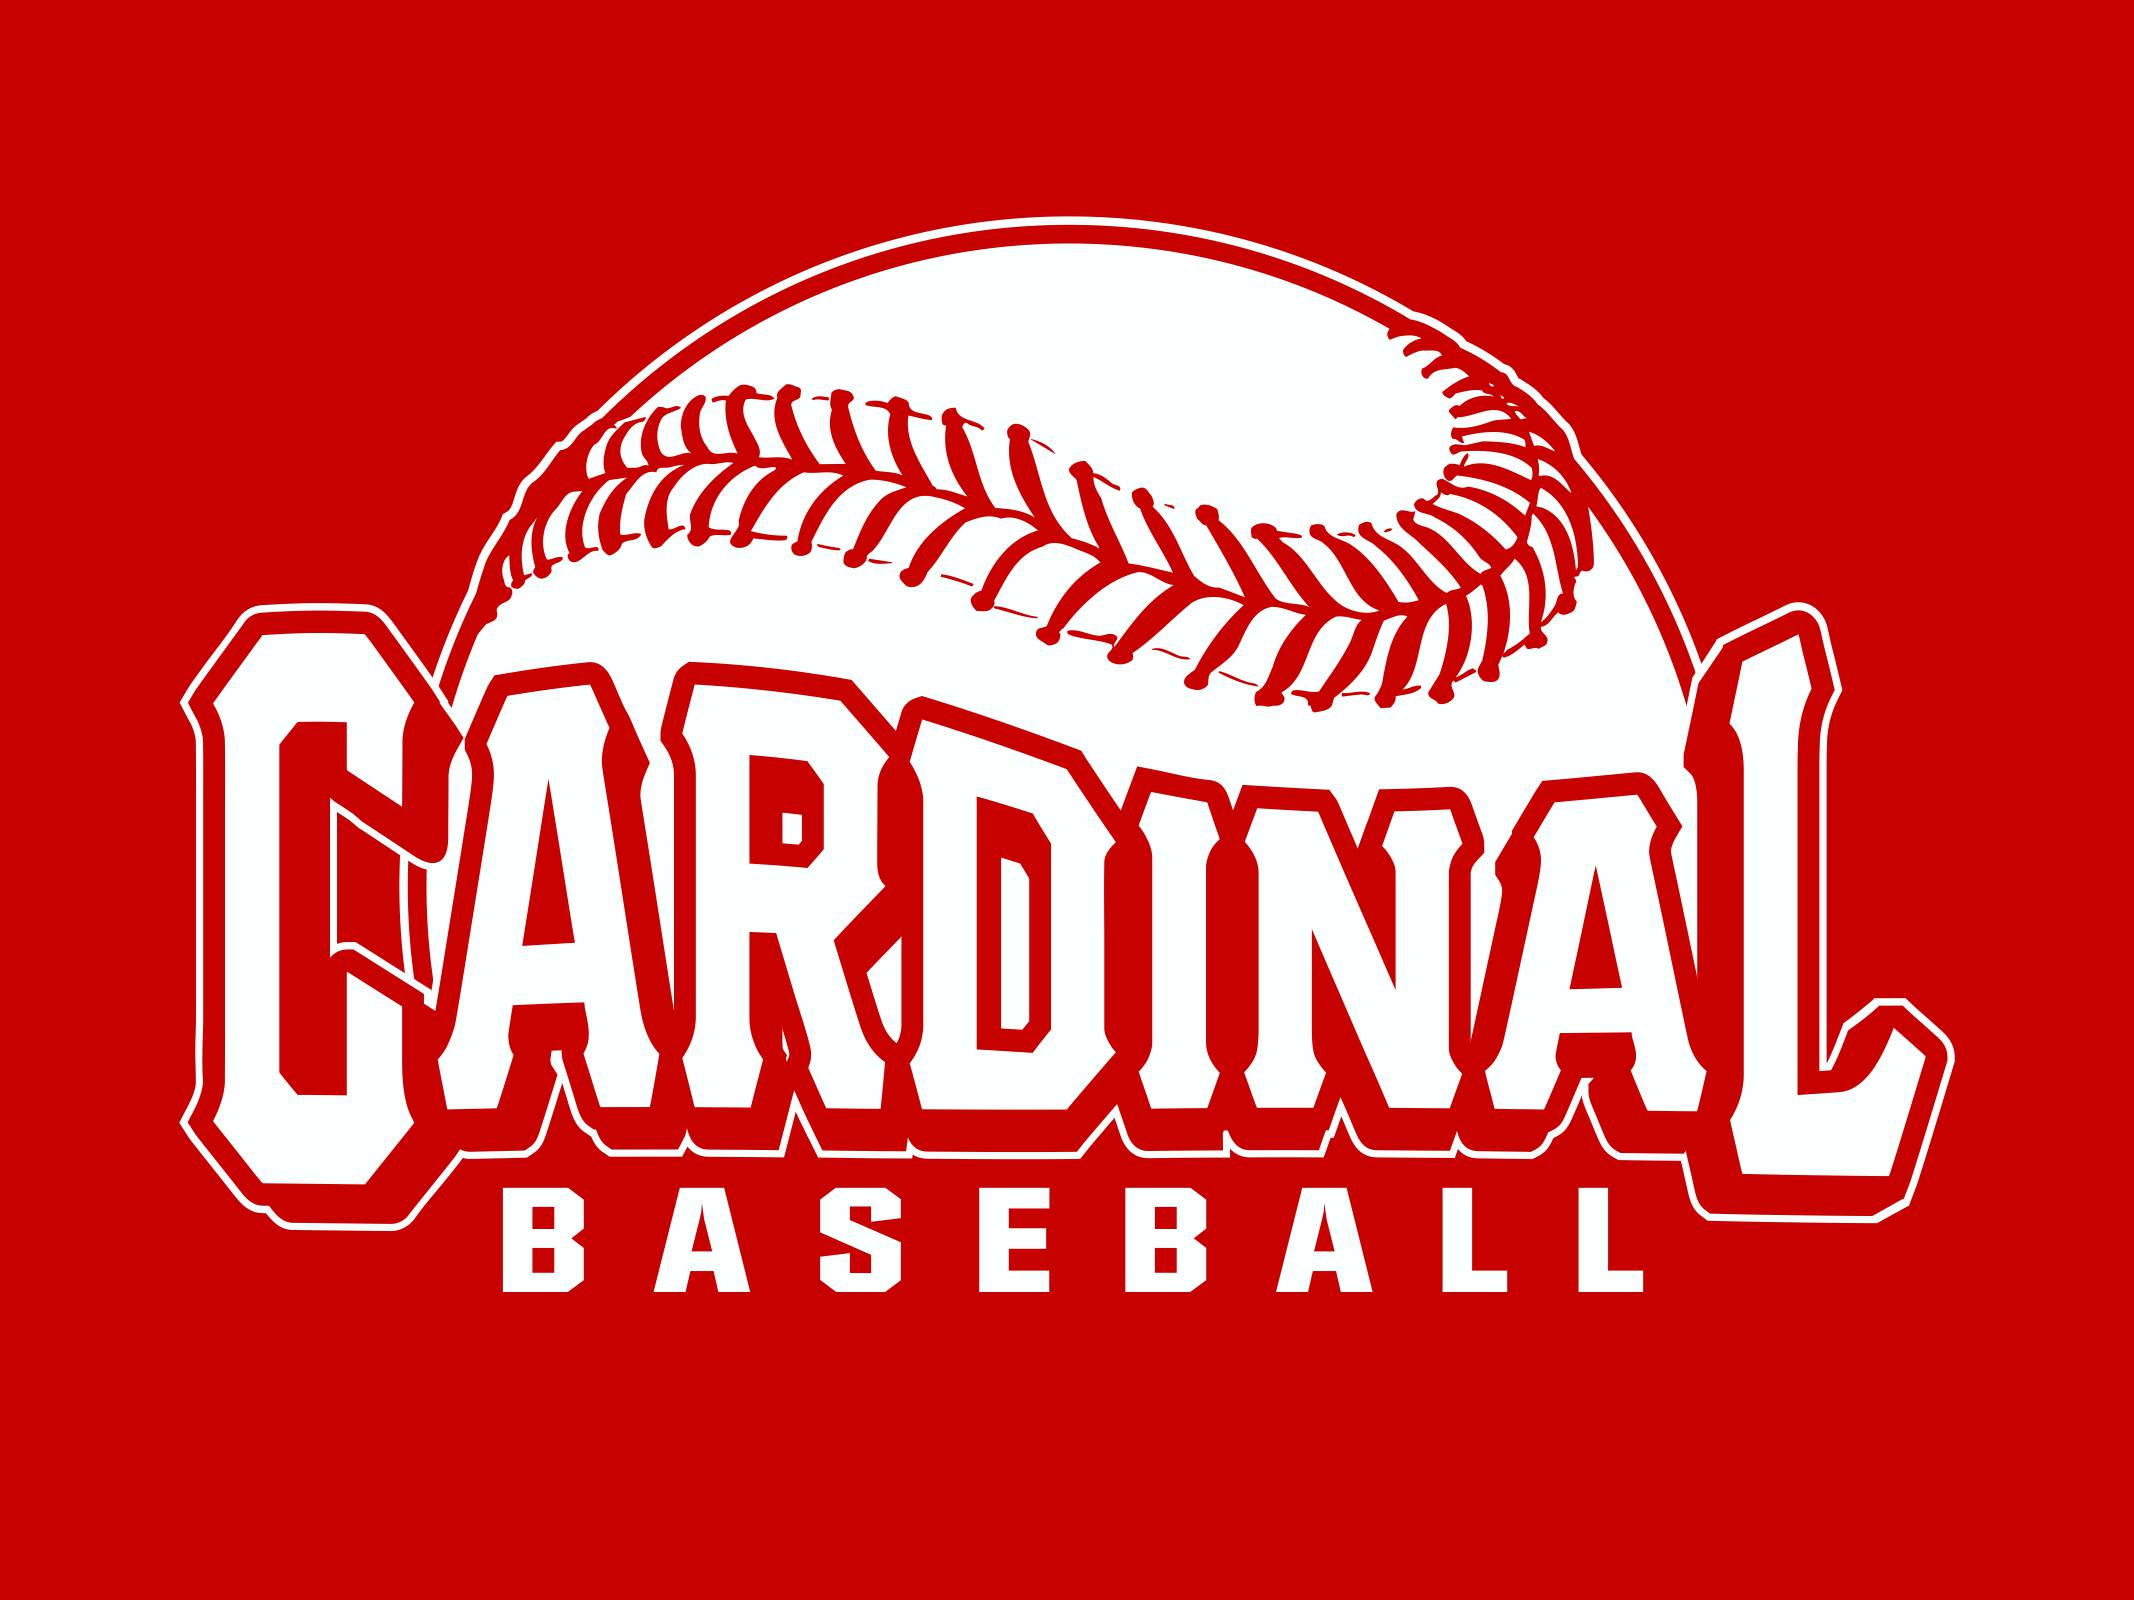 Cardinal baseball logo - photo#28